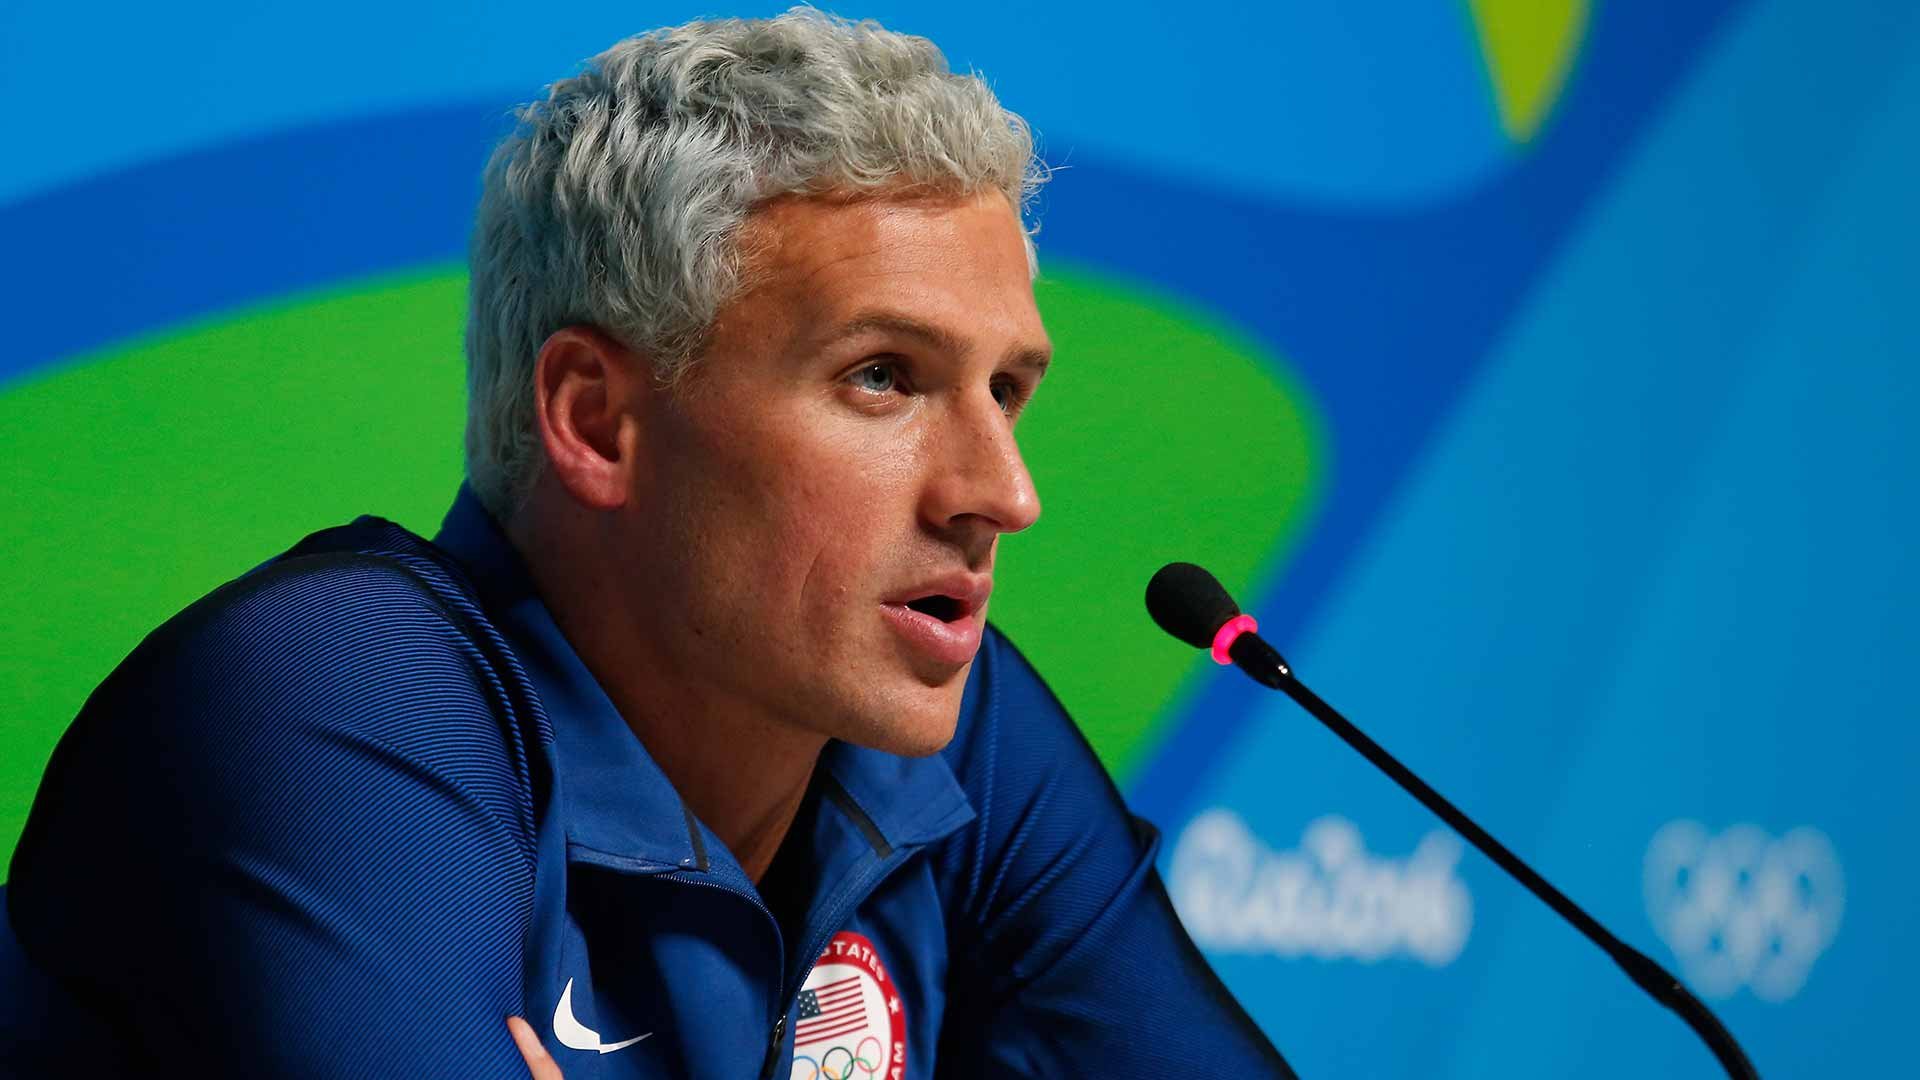 Ryan Lochte grey hairstyles for men 2018